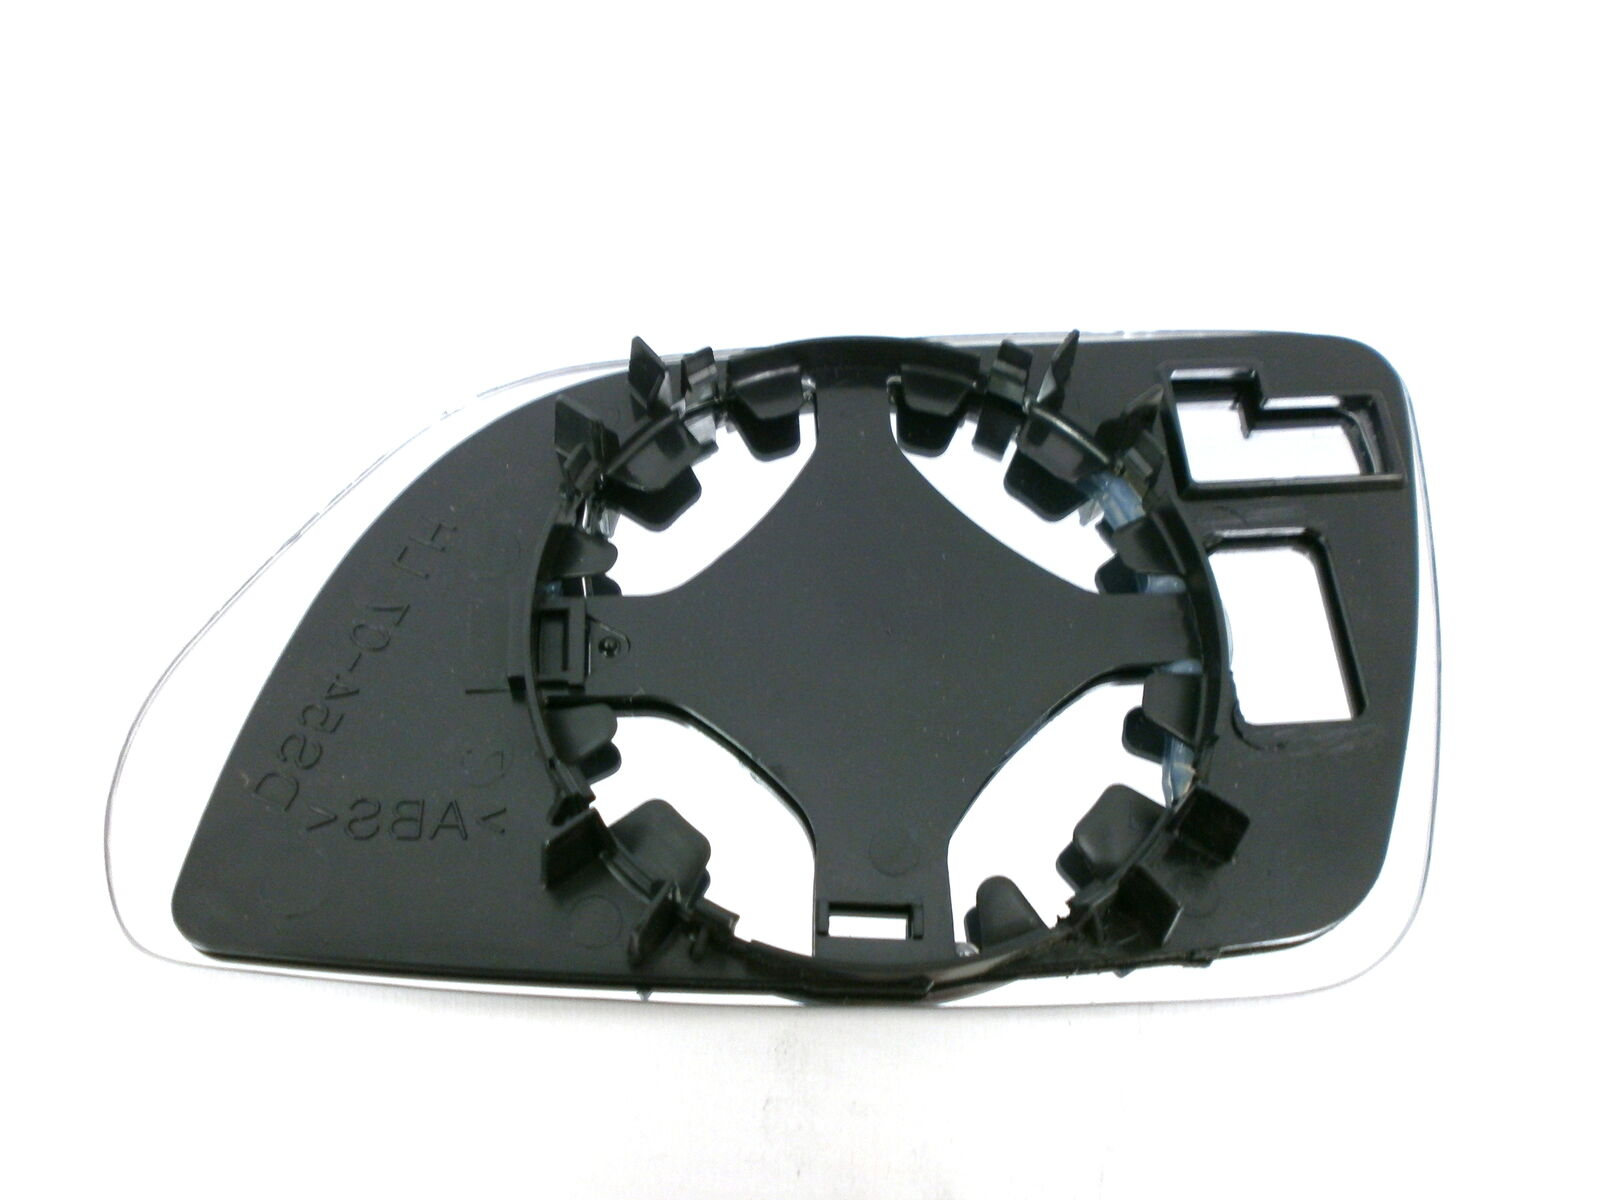 For VW Polo 06.05-04.07 - Trupart MG648 Right Mirror Glass Non-Heated Aspherical